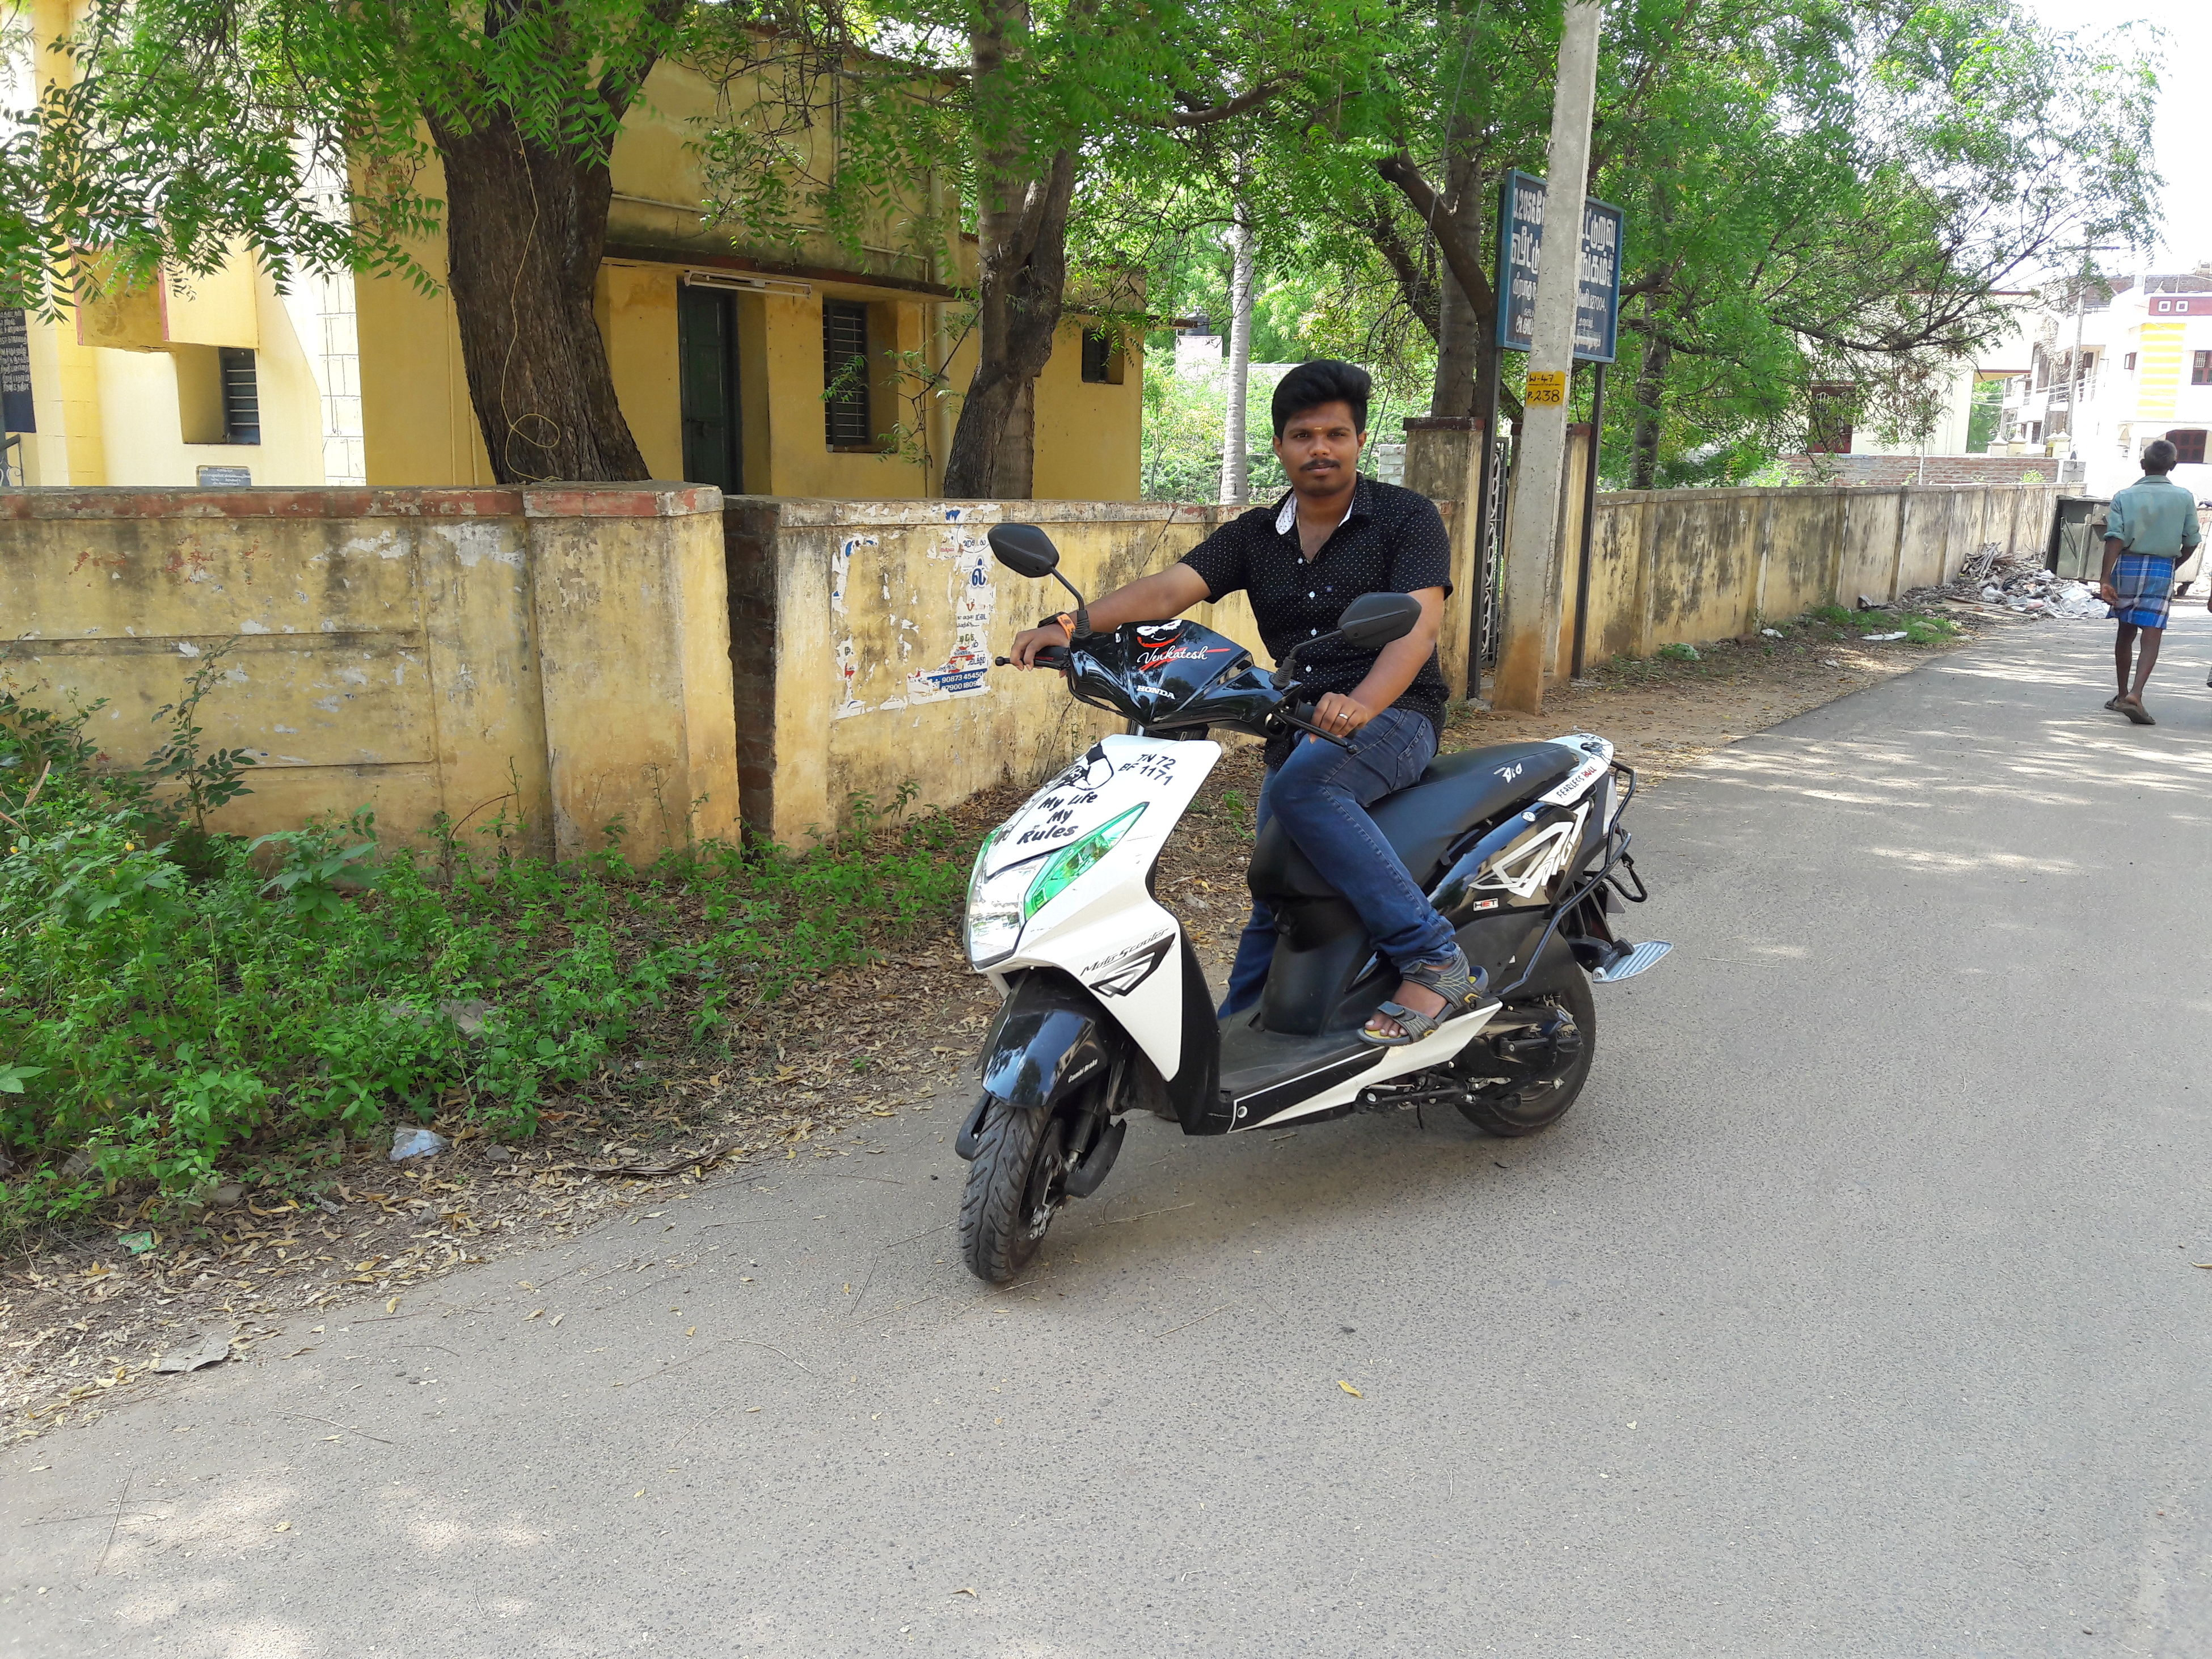 full length, motorcycle, transportation, one person, mode of transport, day, leisure activity, riding, outdoors, land vehicle, tree, sitting, adults only, real people, building exterior, young adult, helmet, adult, one man only, people, headwear, only men